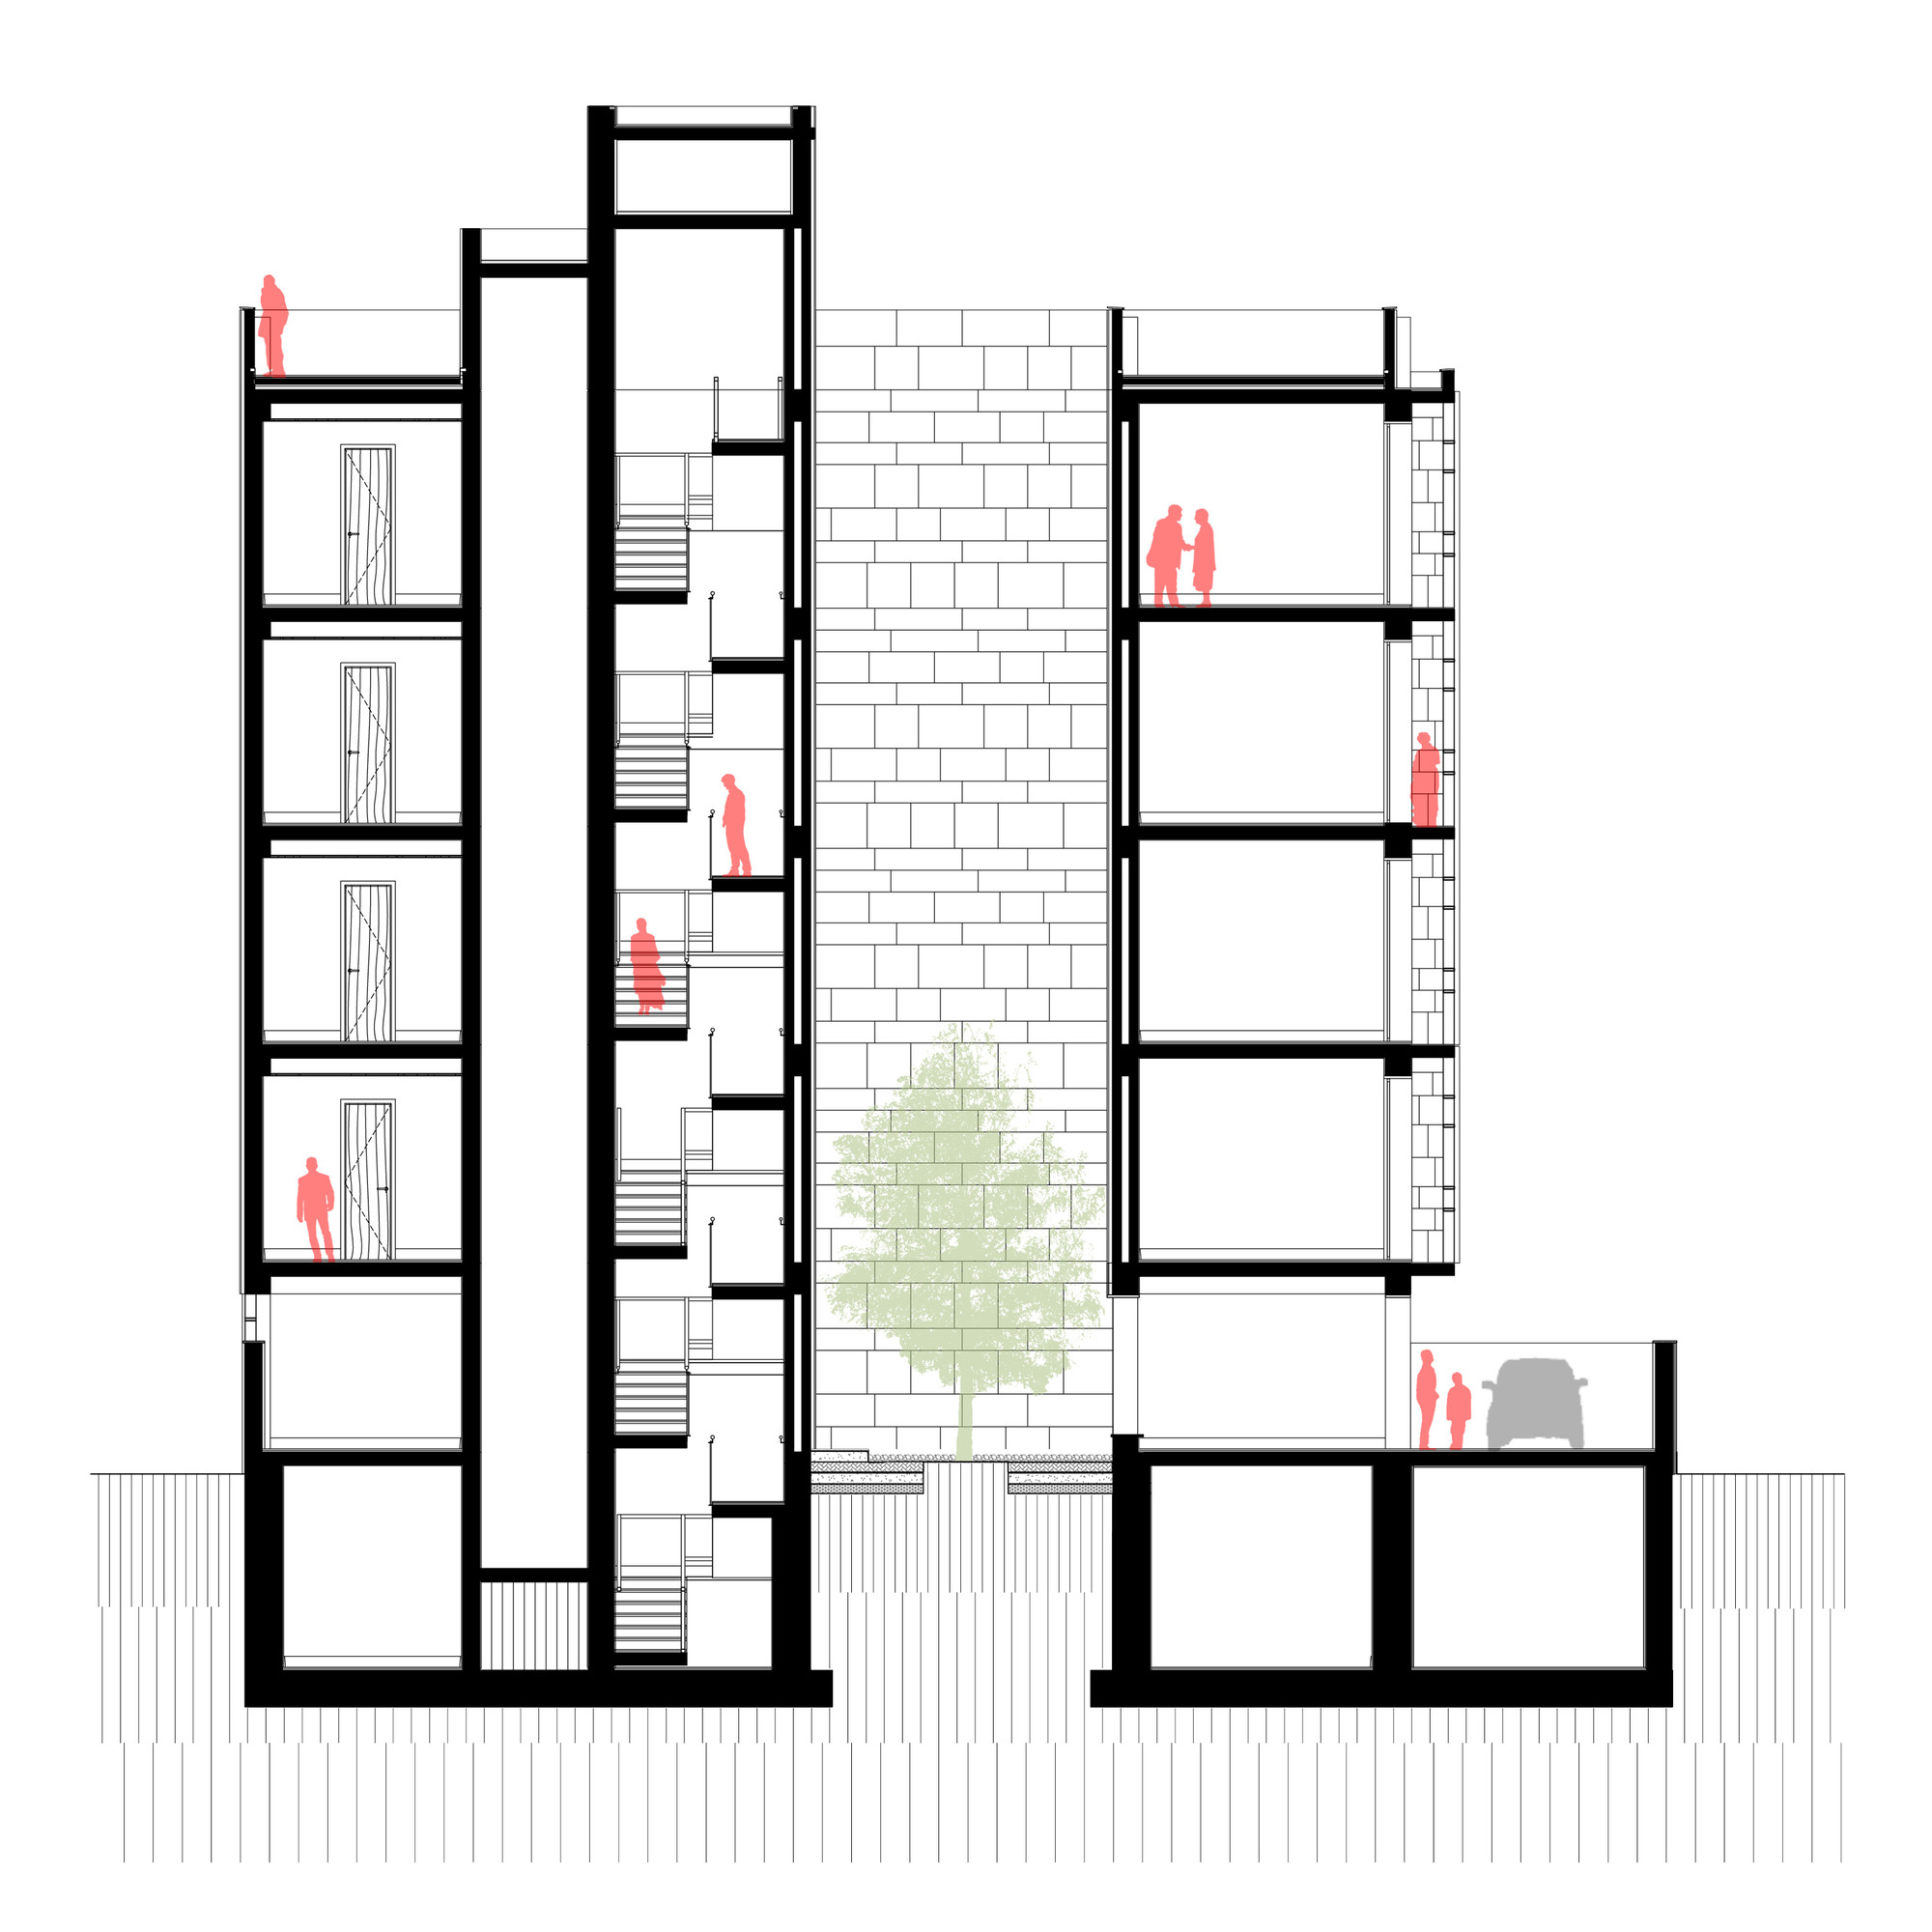 Section 8 Apartments For Rent: Gallery Of Saxena Apartments / Vir.Mueller Architects